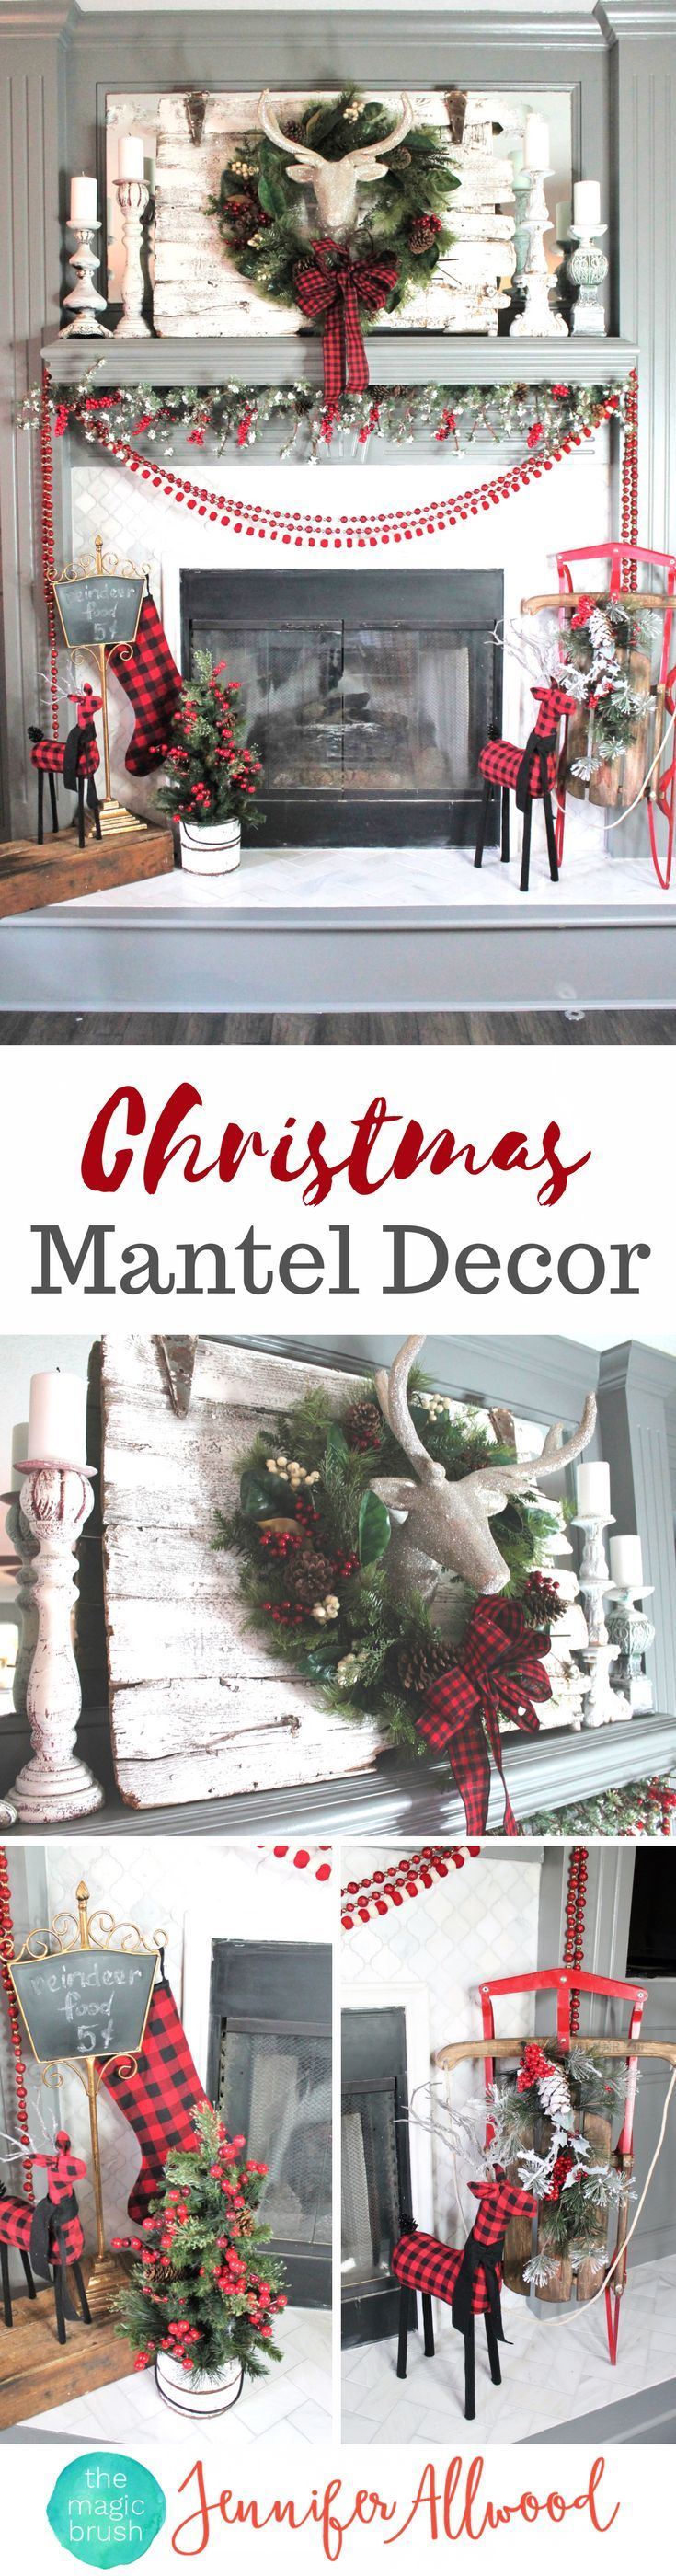 Christmas Mantel Decorating Ideas with Plaid & Glitter - Kerst ...